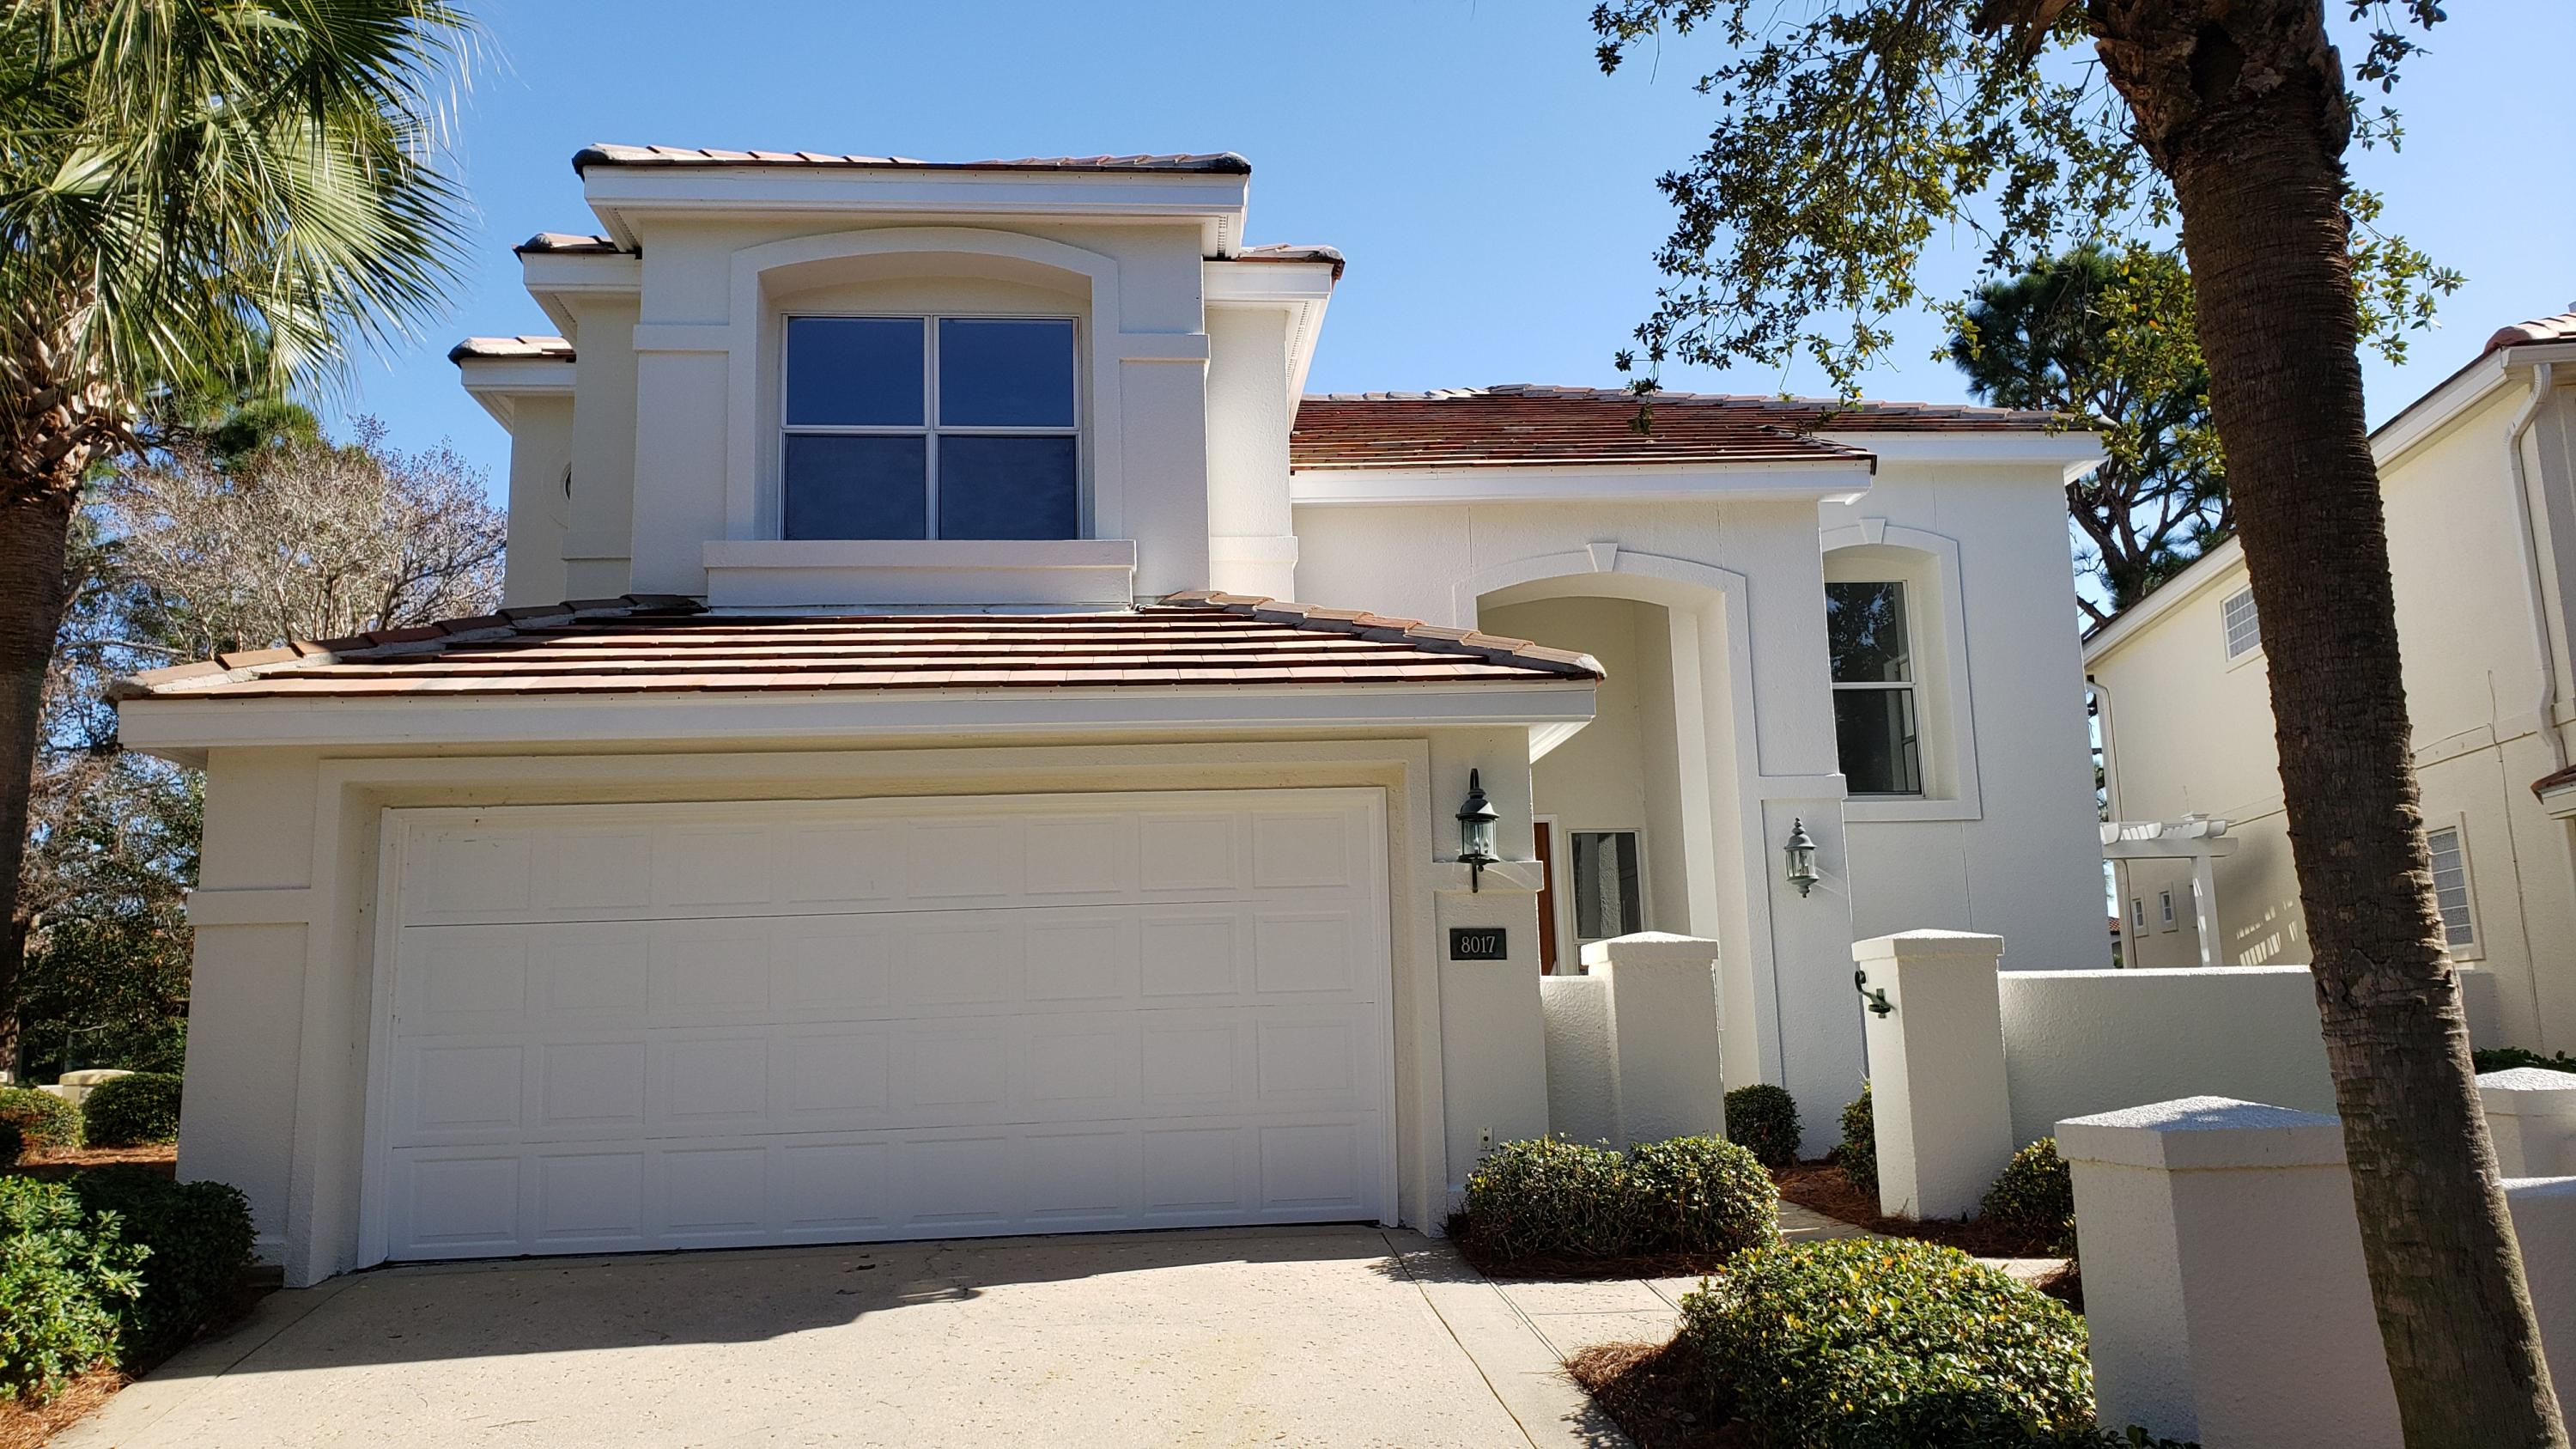 This resort home boasts a long list of interior and exterior updates, including paint (interior and